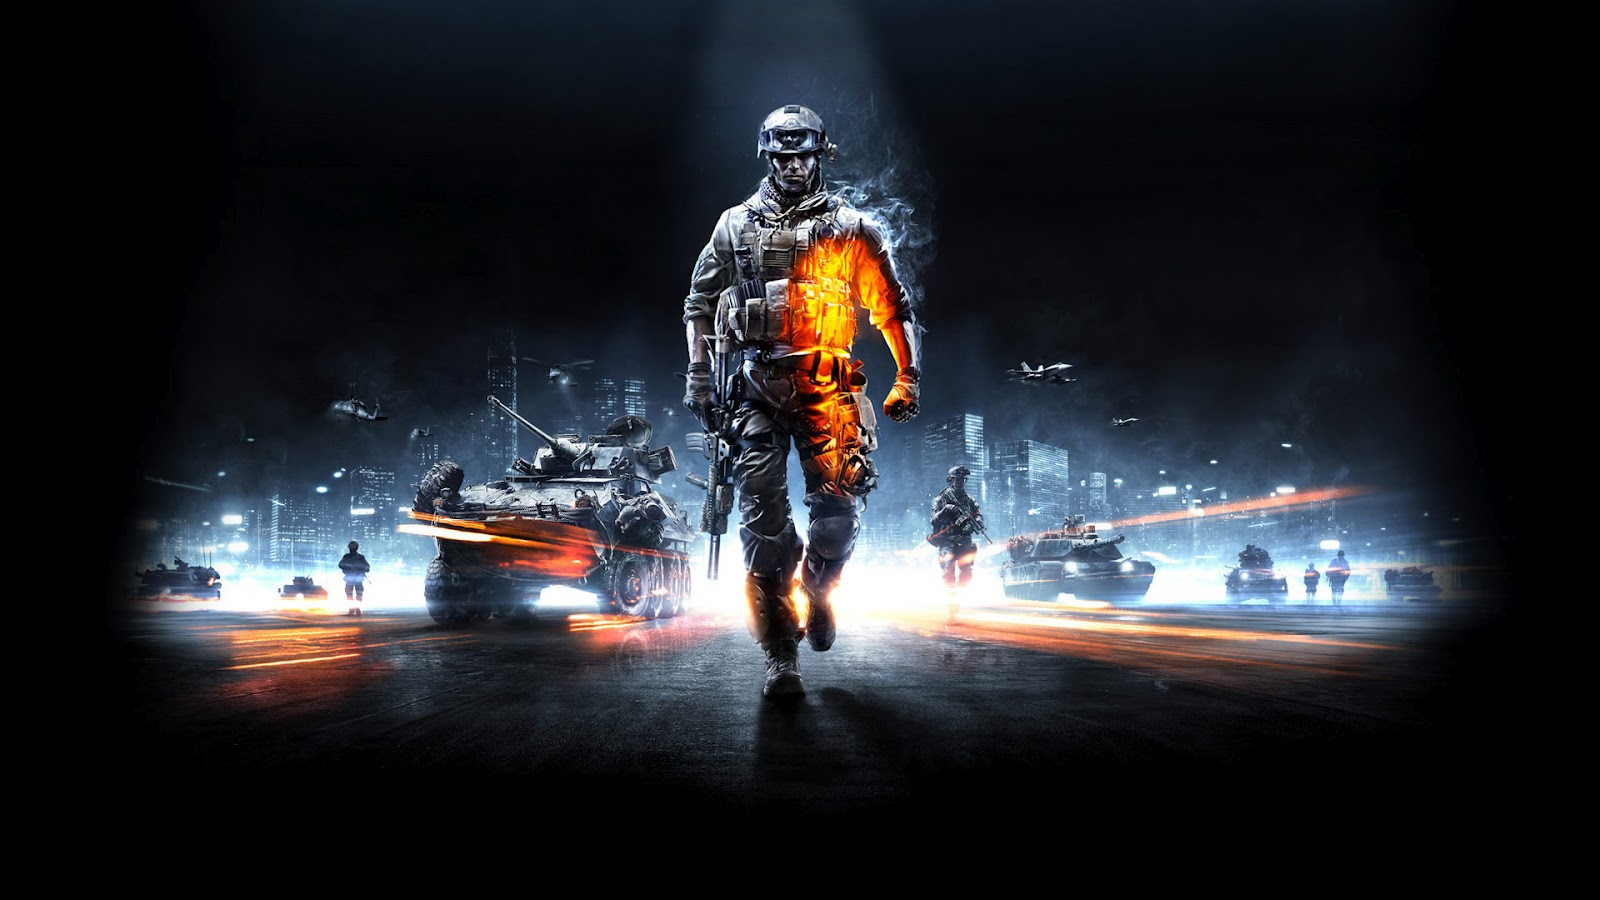 battlefield 3 bf3 wallpaper background ea dice fps first person 1600x900